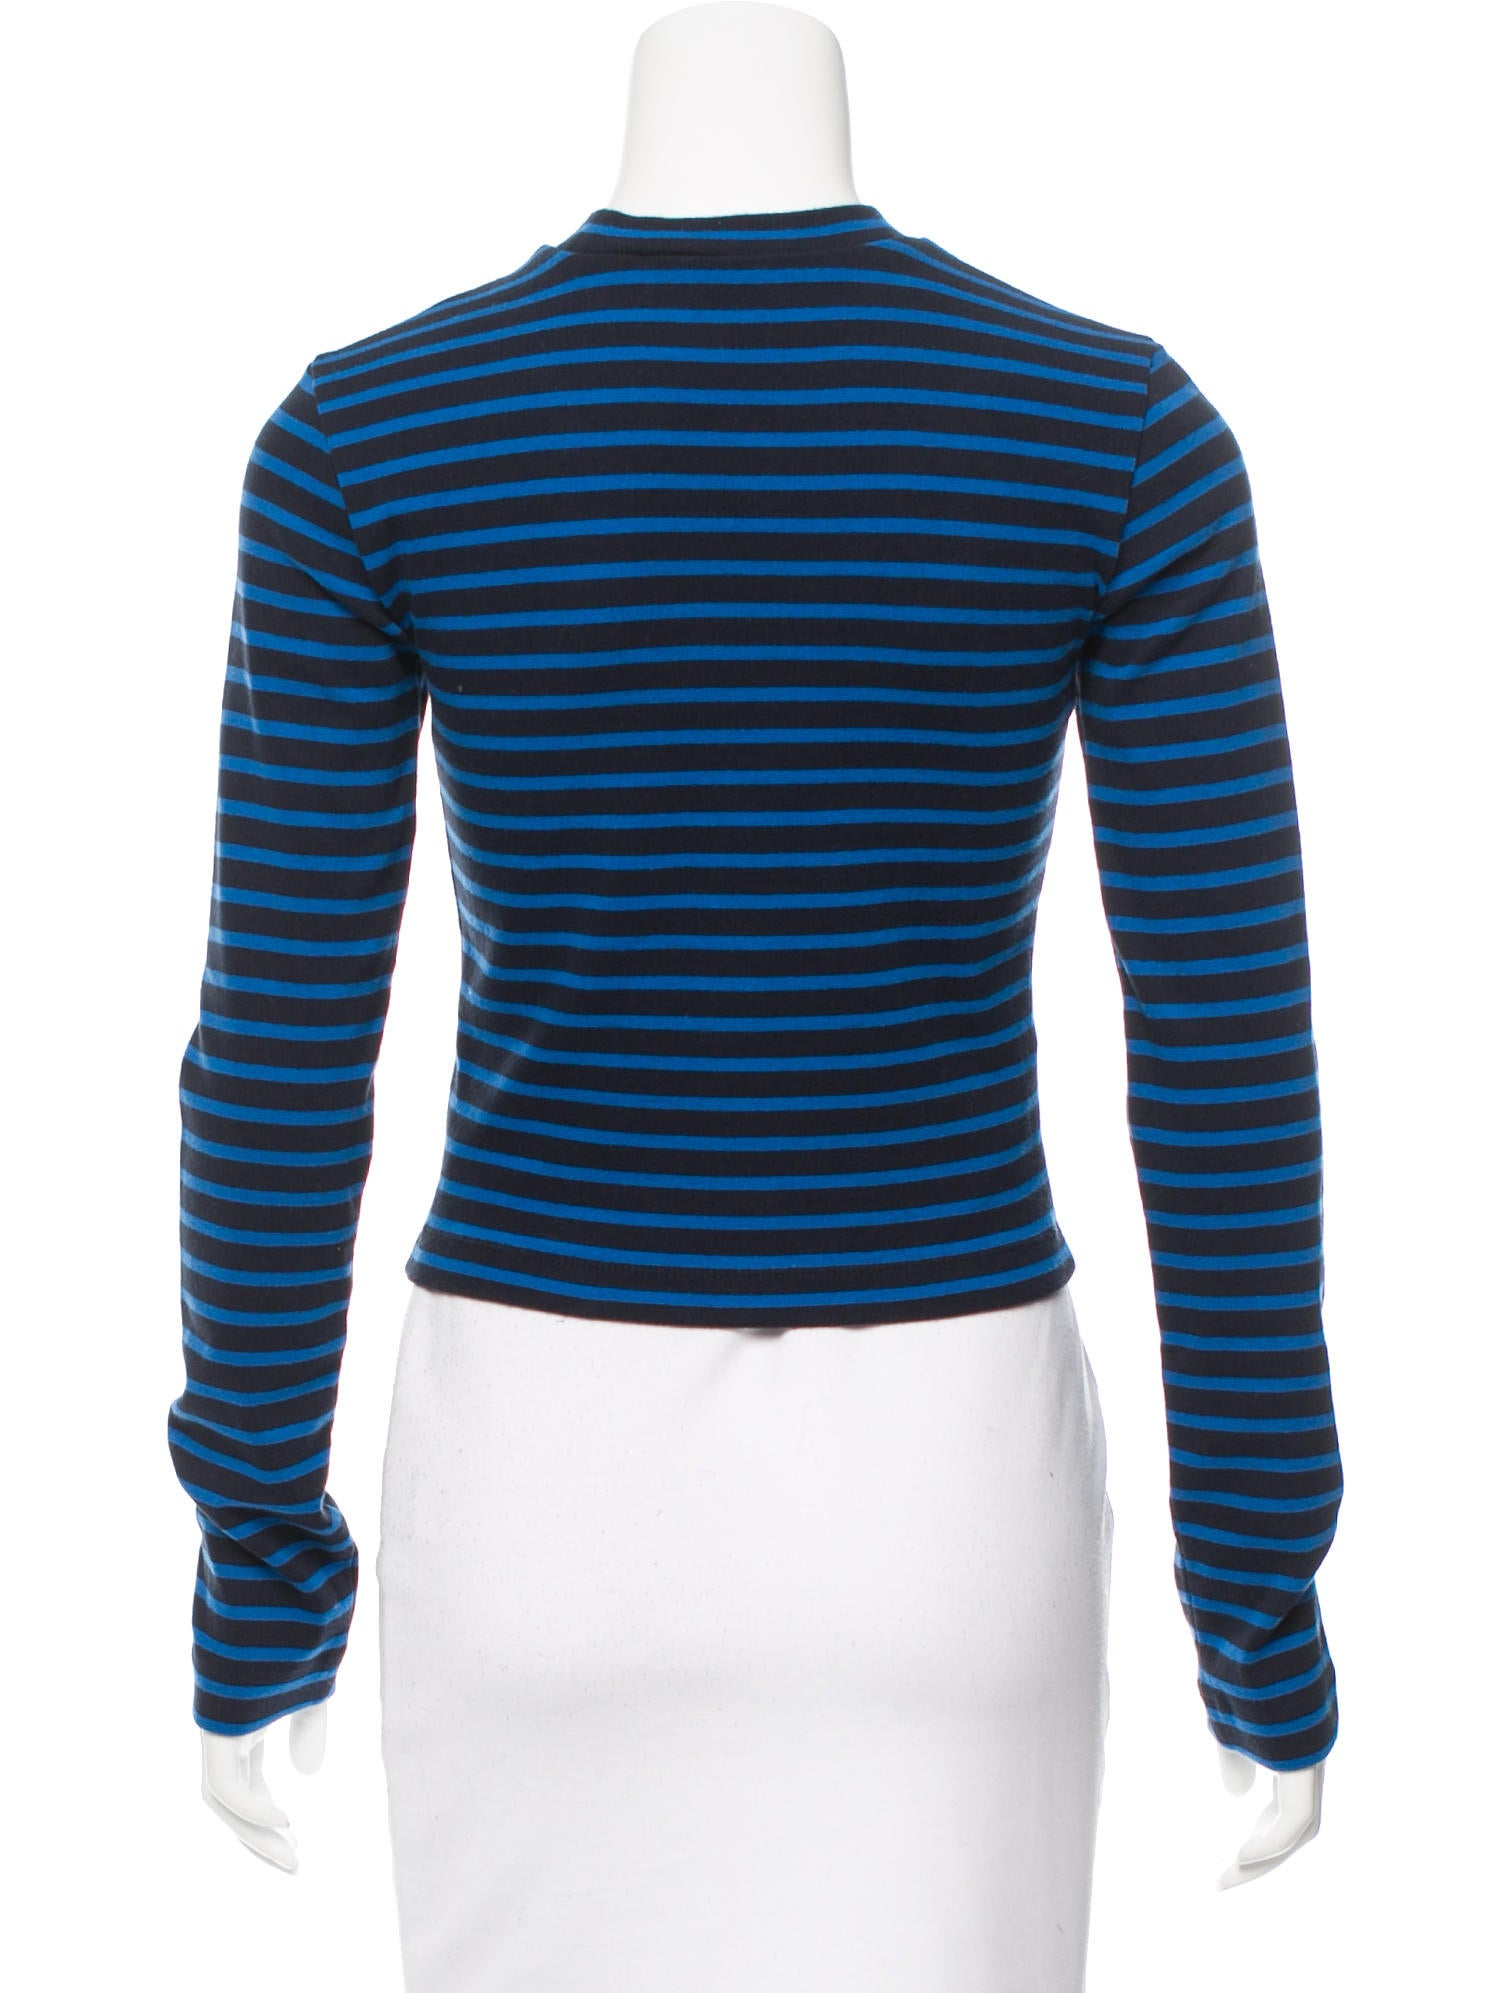 Lulus Exclusive! Hit the mark in the in the Lulus Class Act Blush Striped Ribbed Knit Crop Top! This super cute ribbed knit top features a classic crew neckline and a white stripe pattern across the fitted cropped bodice and the short sleeves. We are loving this top paired with some high-waited skinny jeans for a cool and casual look/5(5).